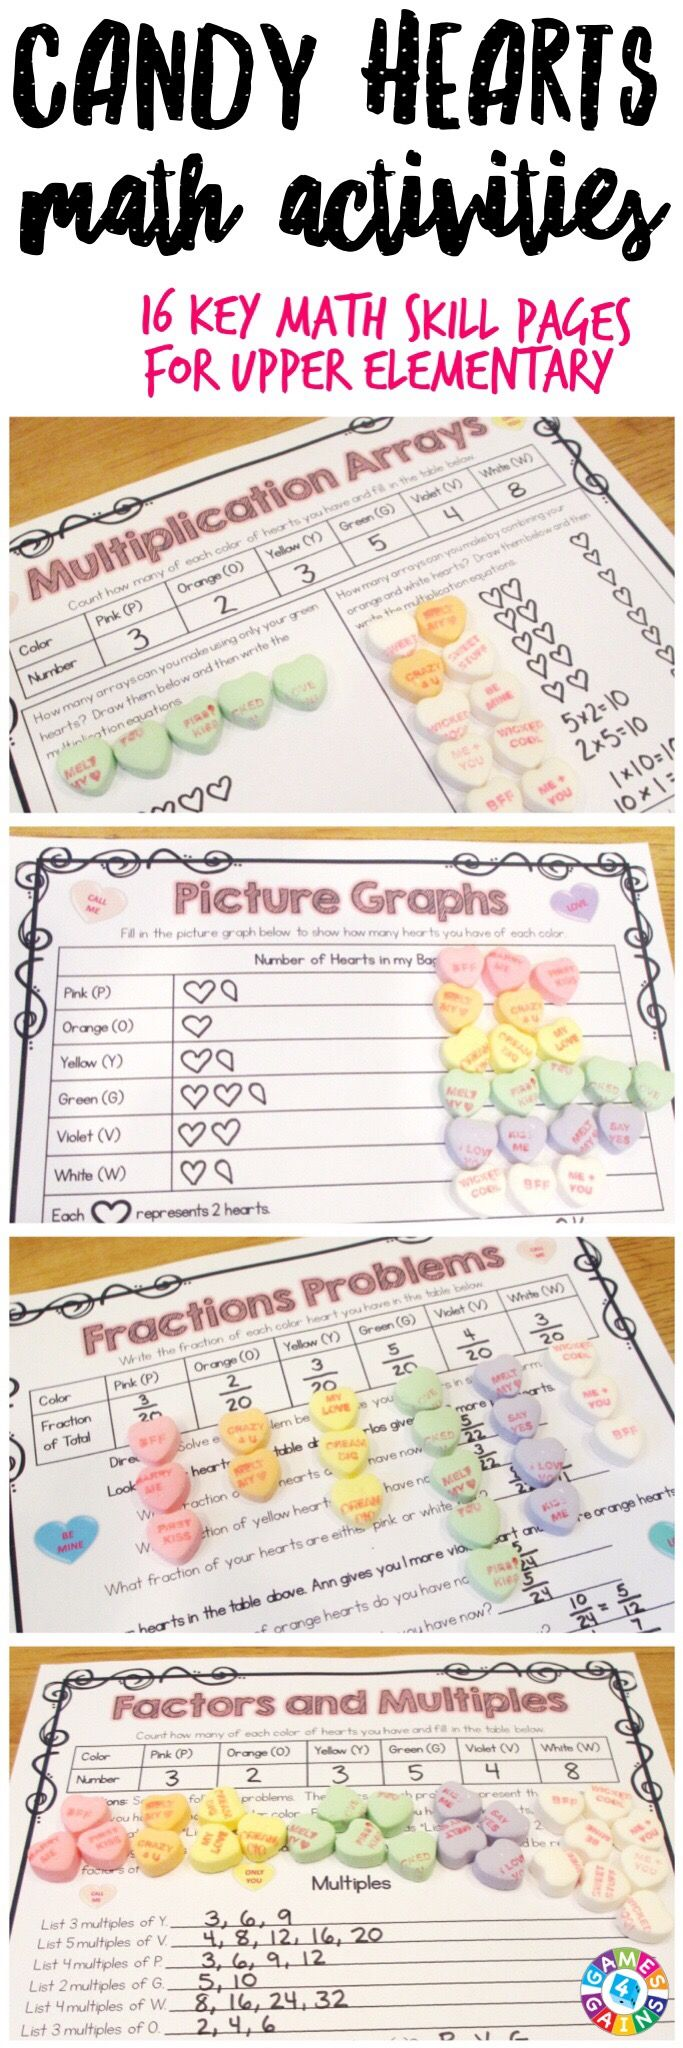 """""""This is the PERFECT activity for Valentine's Day! I love having holiday activities for upper grade kids that are meaningful review!"""" This Valentine's Day Math Conversation Hearts Project contains 16 pages of printable math activities to use with some yummy conversation hearts! These work perfectly for small groups, centers, informal assessments, review, etc. Ideal for grades 4-6."""